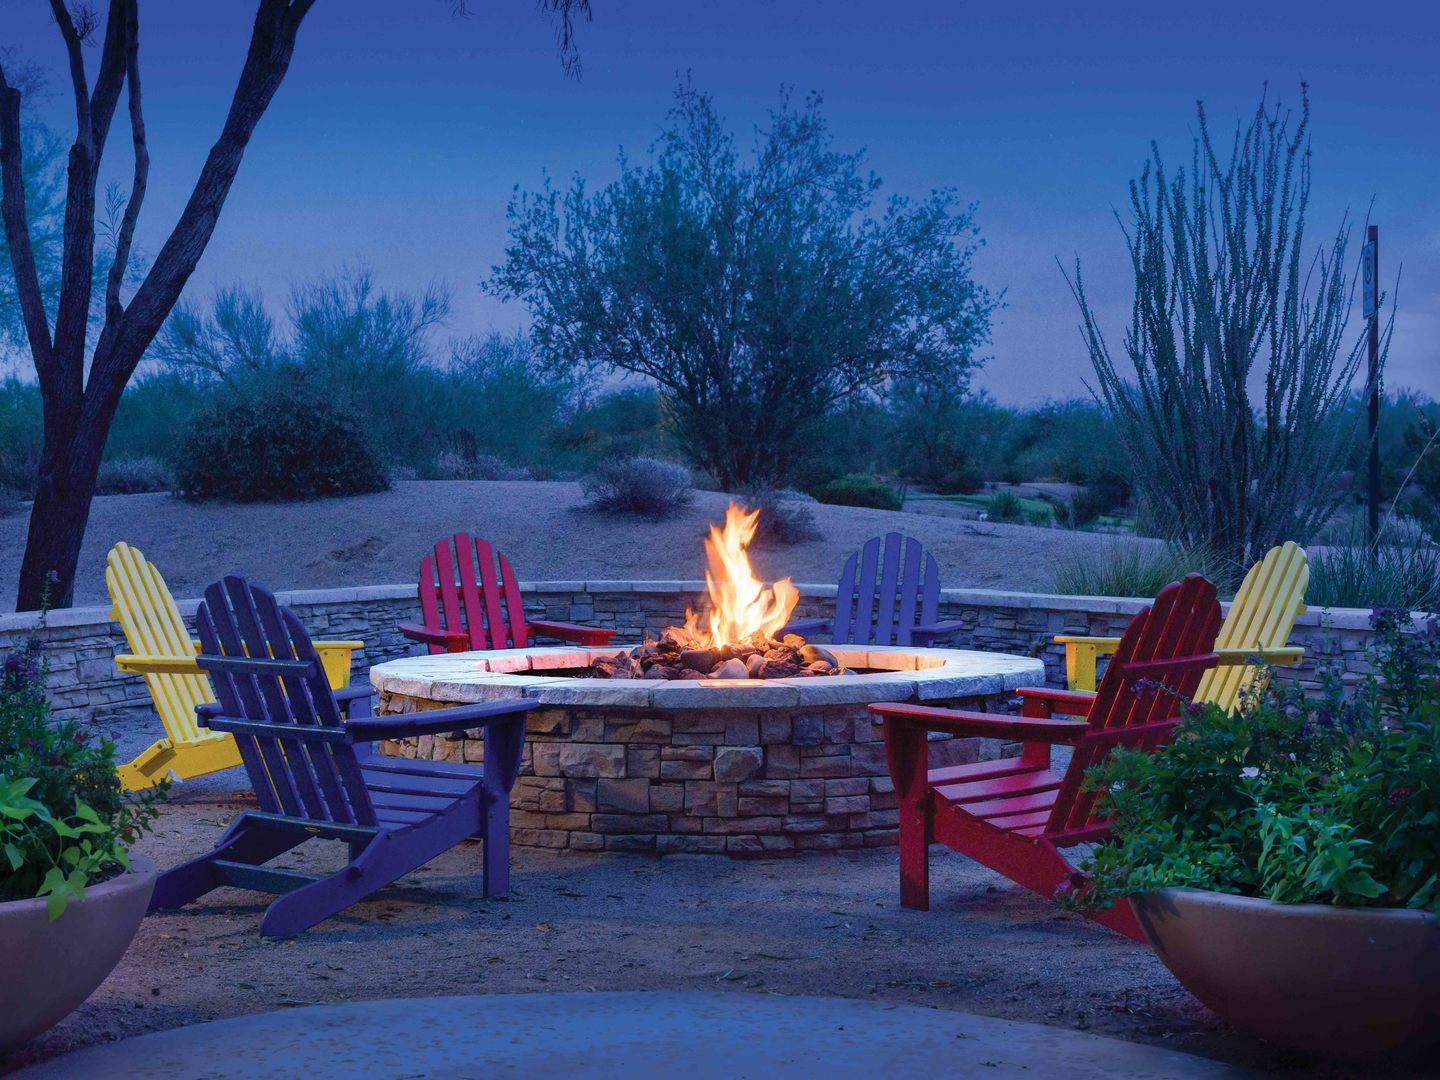 Marriott's Canyon Villas Fire Pit. Marriott's Canyon Villas is located in Phoenix, Arizona United States.